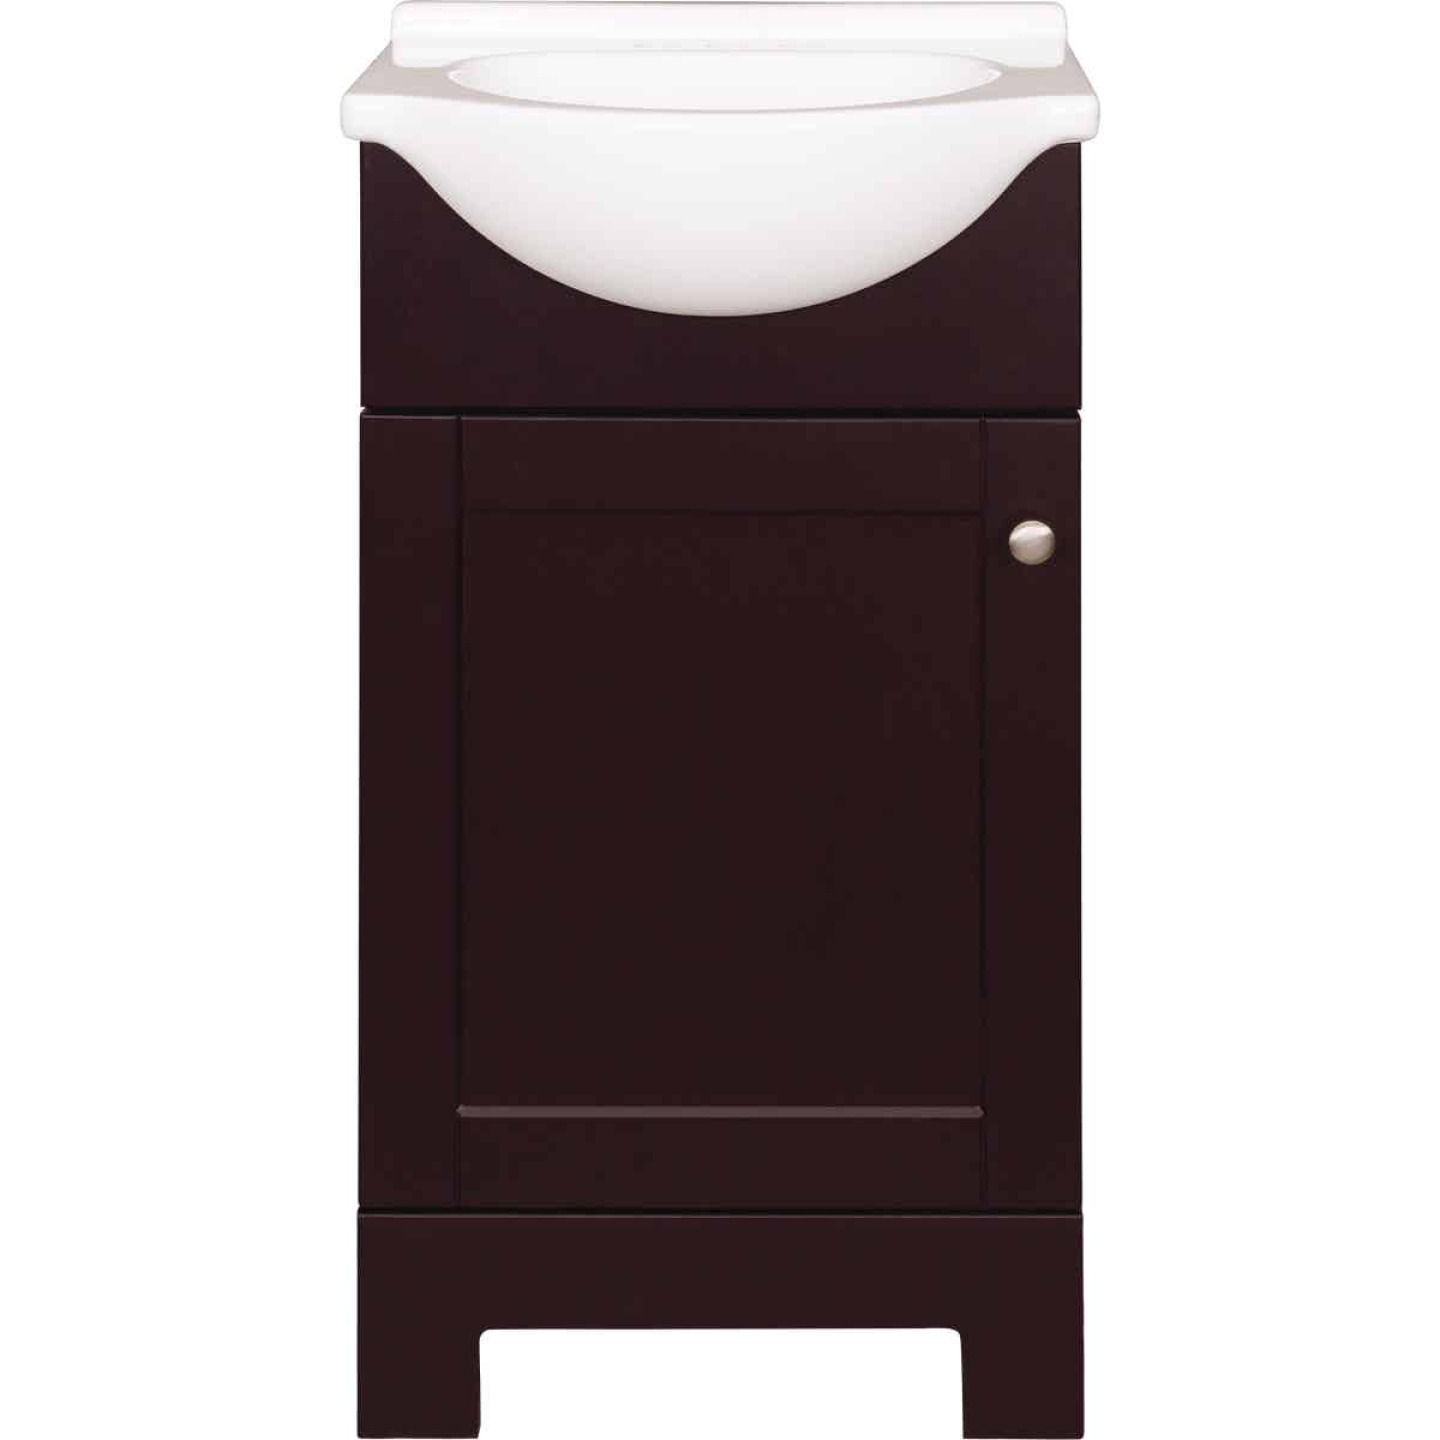 Continental Cabinets European Espresso 18 In. W x 33-1/2 In. H x 12-1/2 In. D Vanity with White Cultured Marble Top Image 6